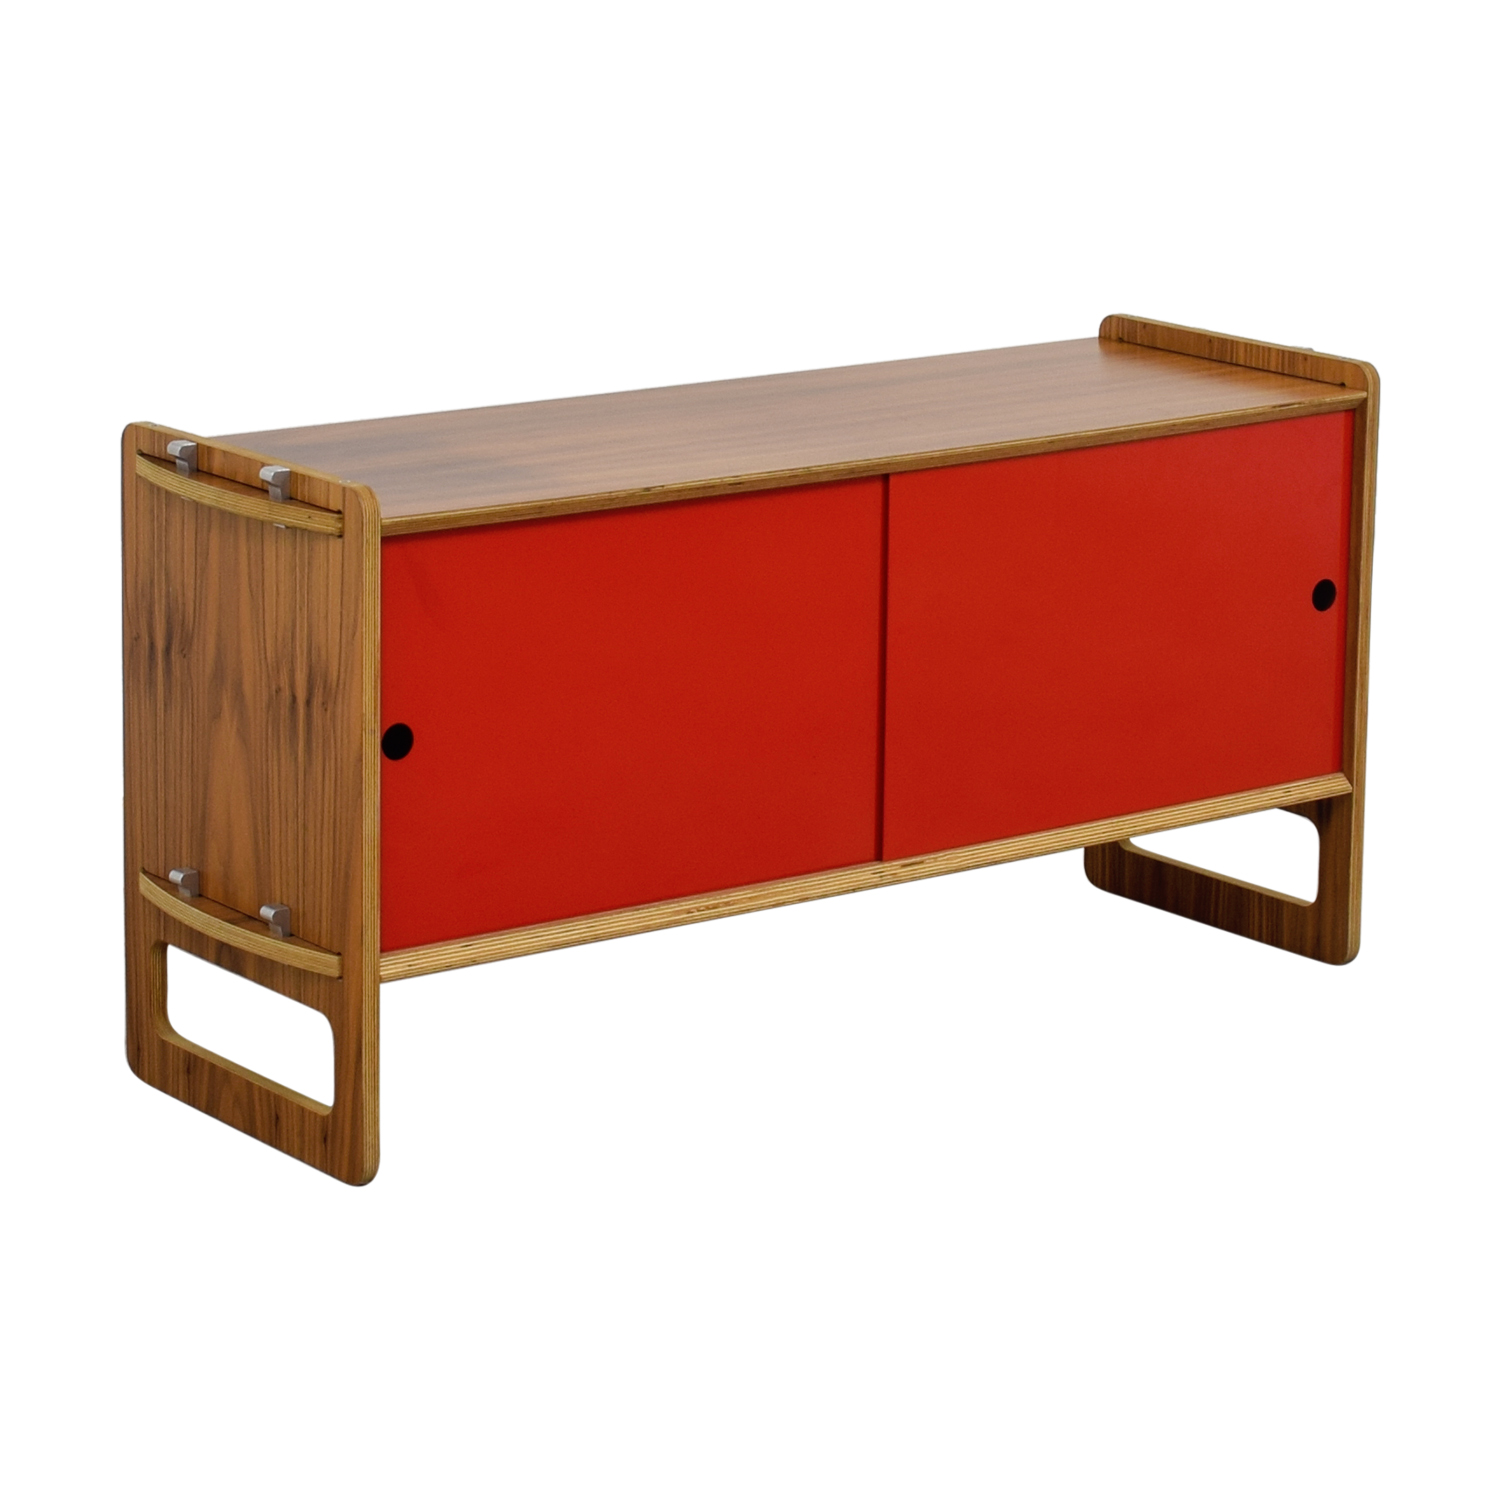 Wood and Red Sliding Door Cabinet price